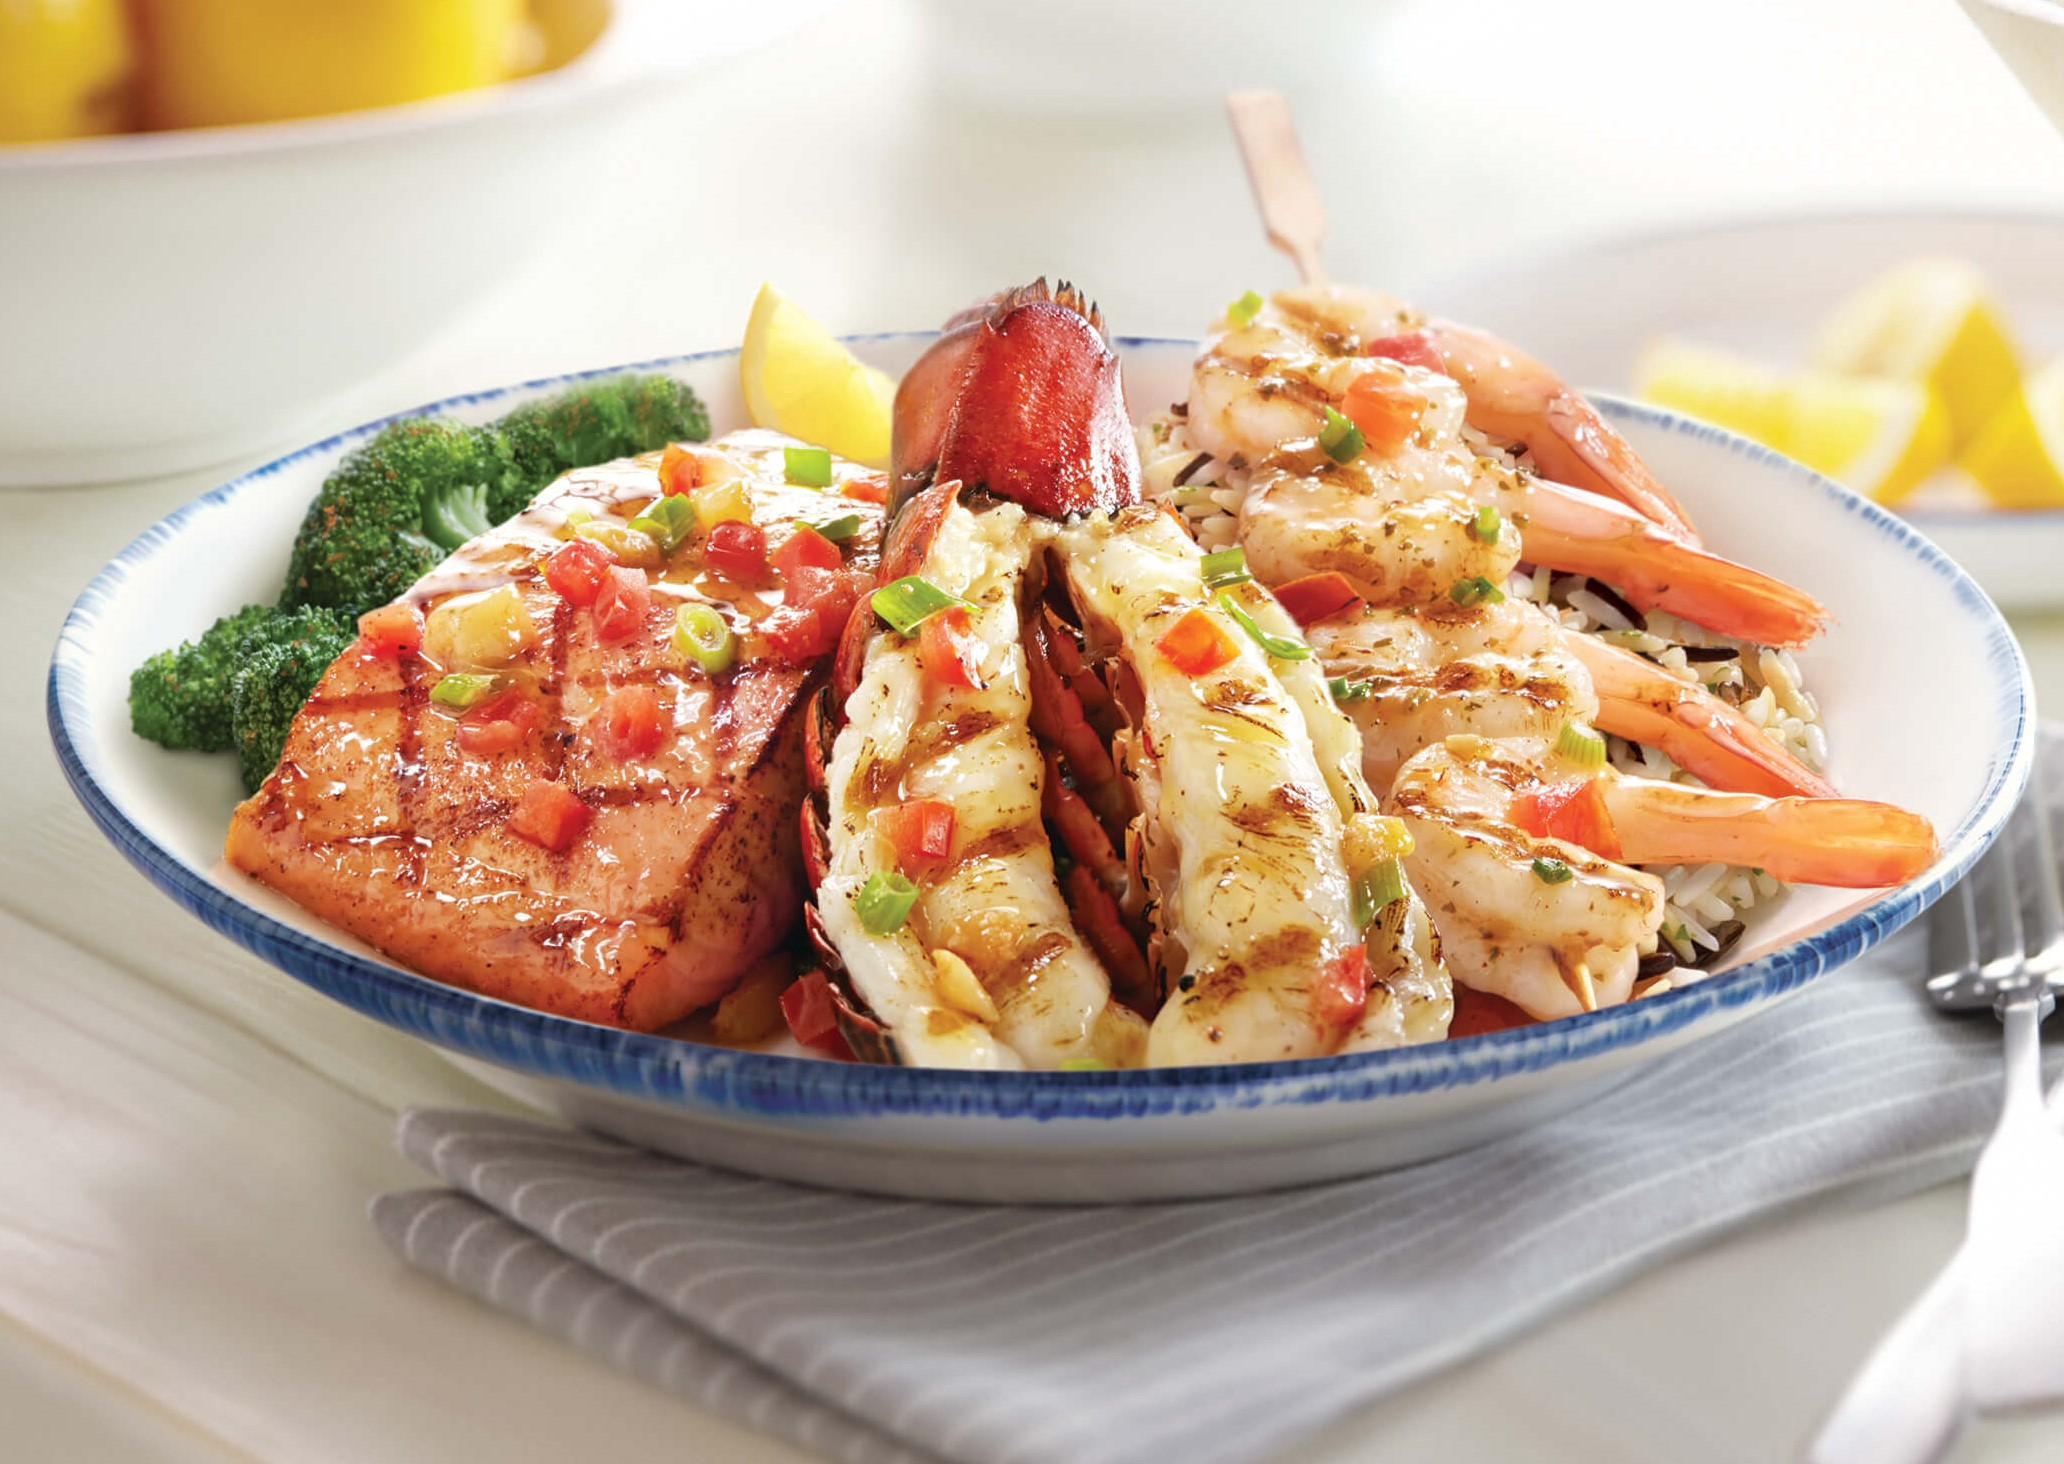 wood-grilled lobster, shrimp, and salmon at red lobster